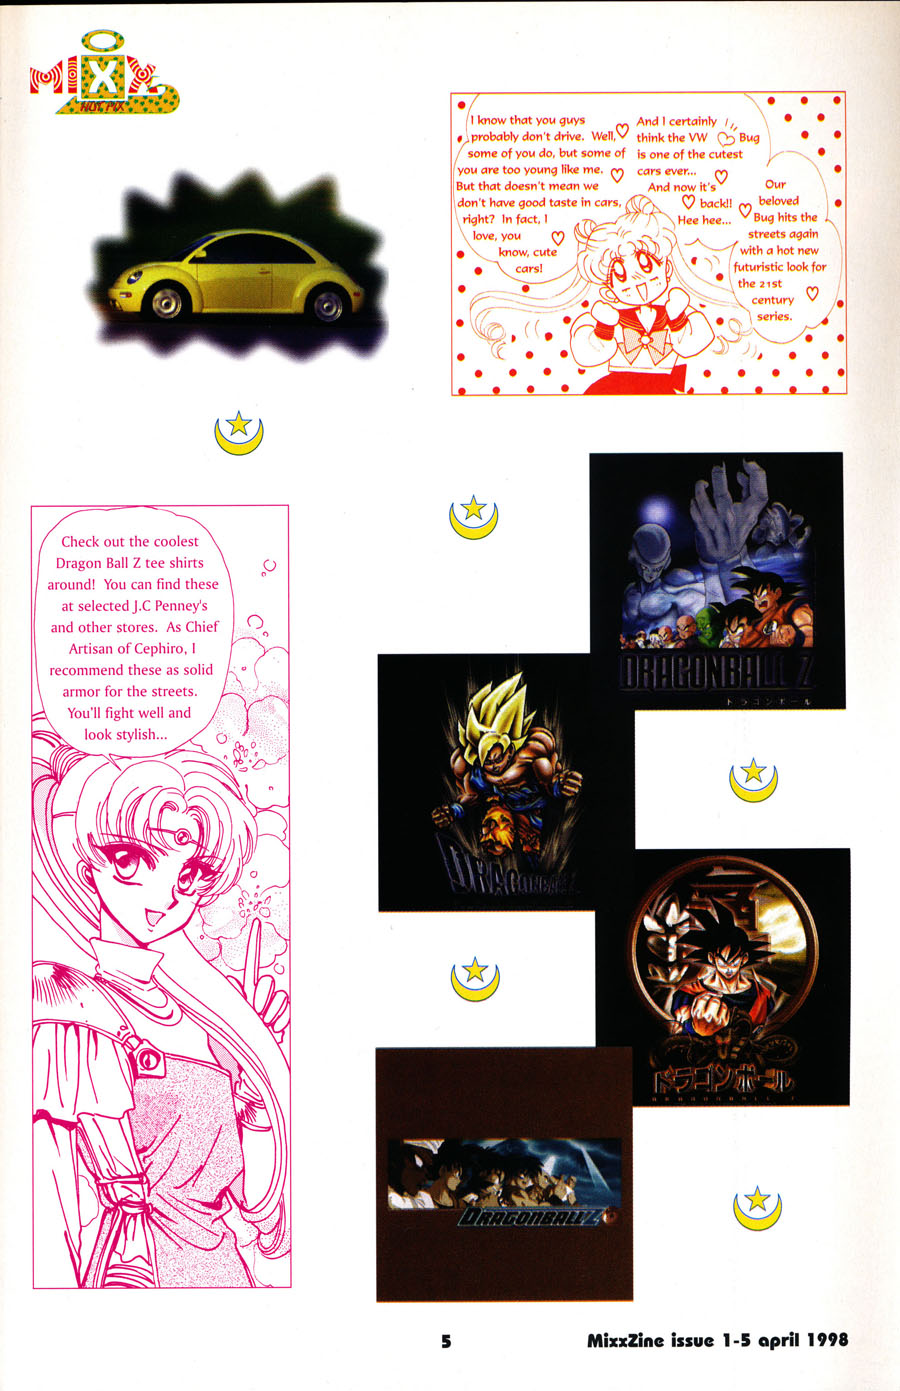 mixx-zine-dragon-ball-z-shirts-sailor-moon